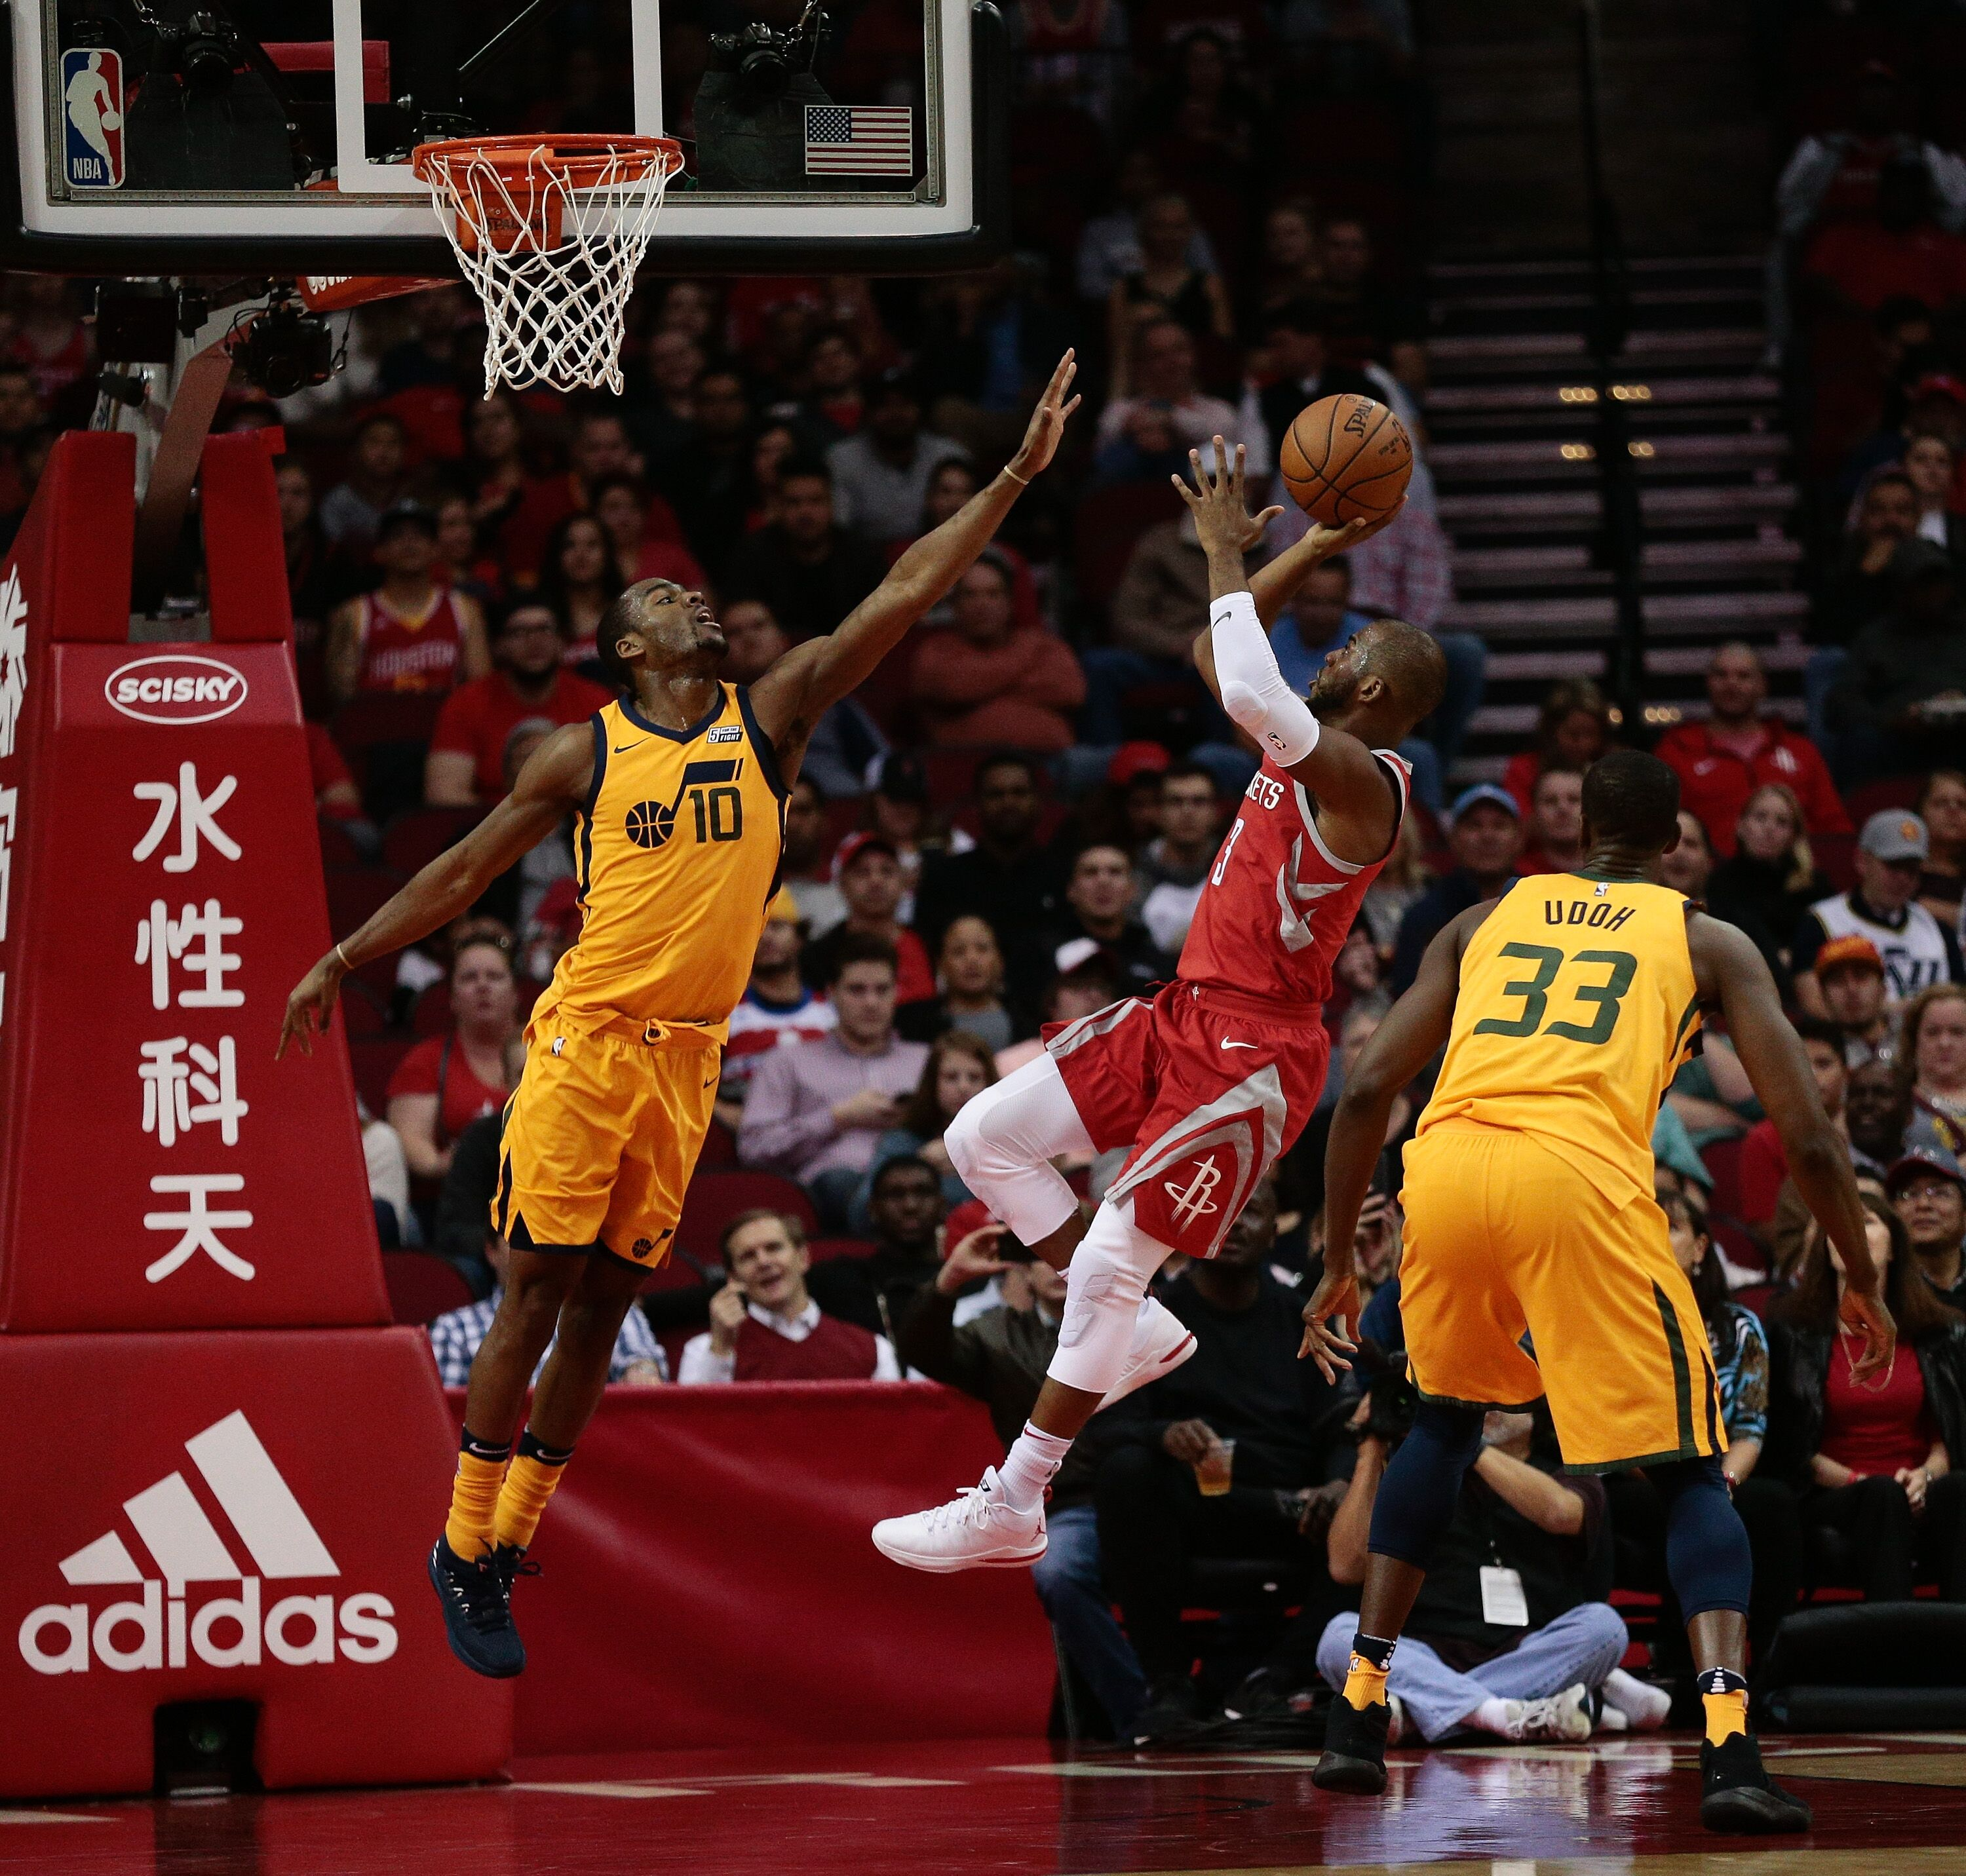 Warriors Bulls Live Stream Free: Rockets At Jazz Live Stream Info: How To Watch Online